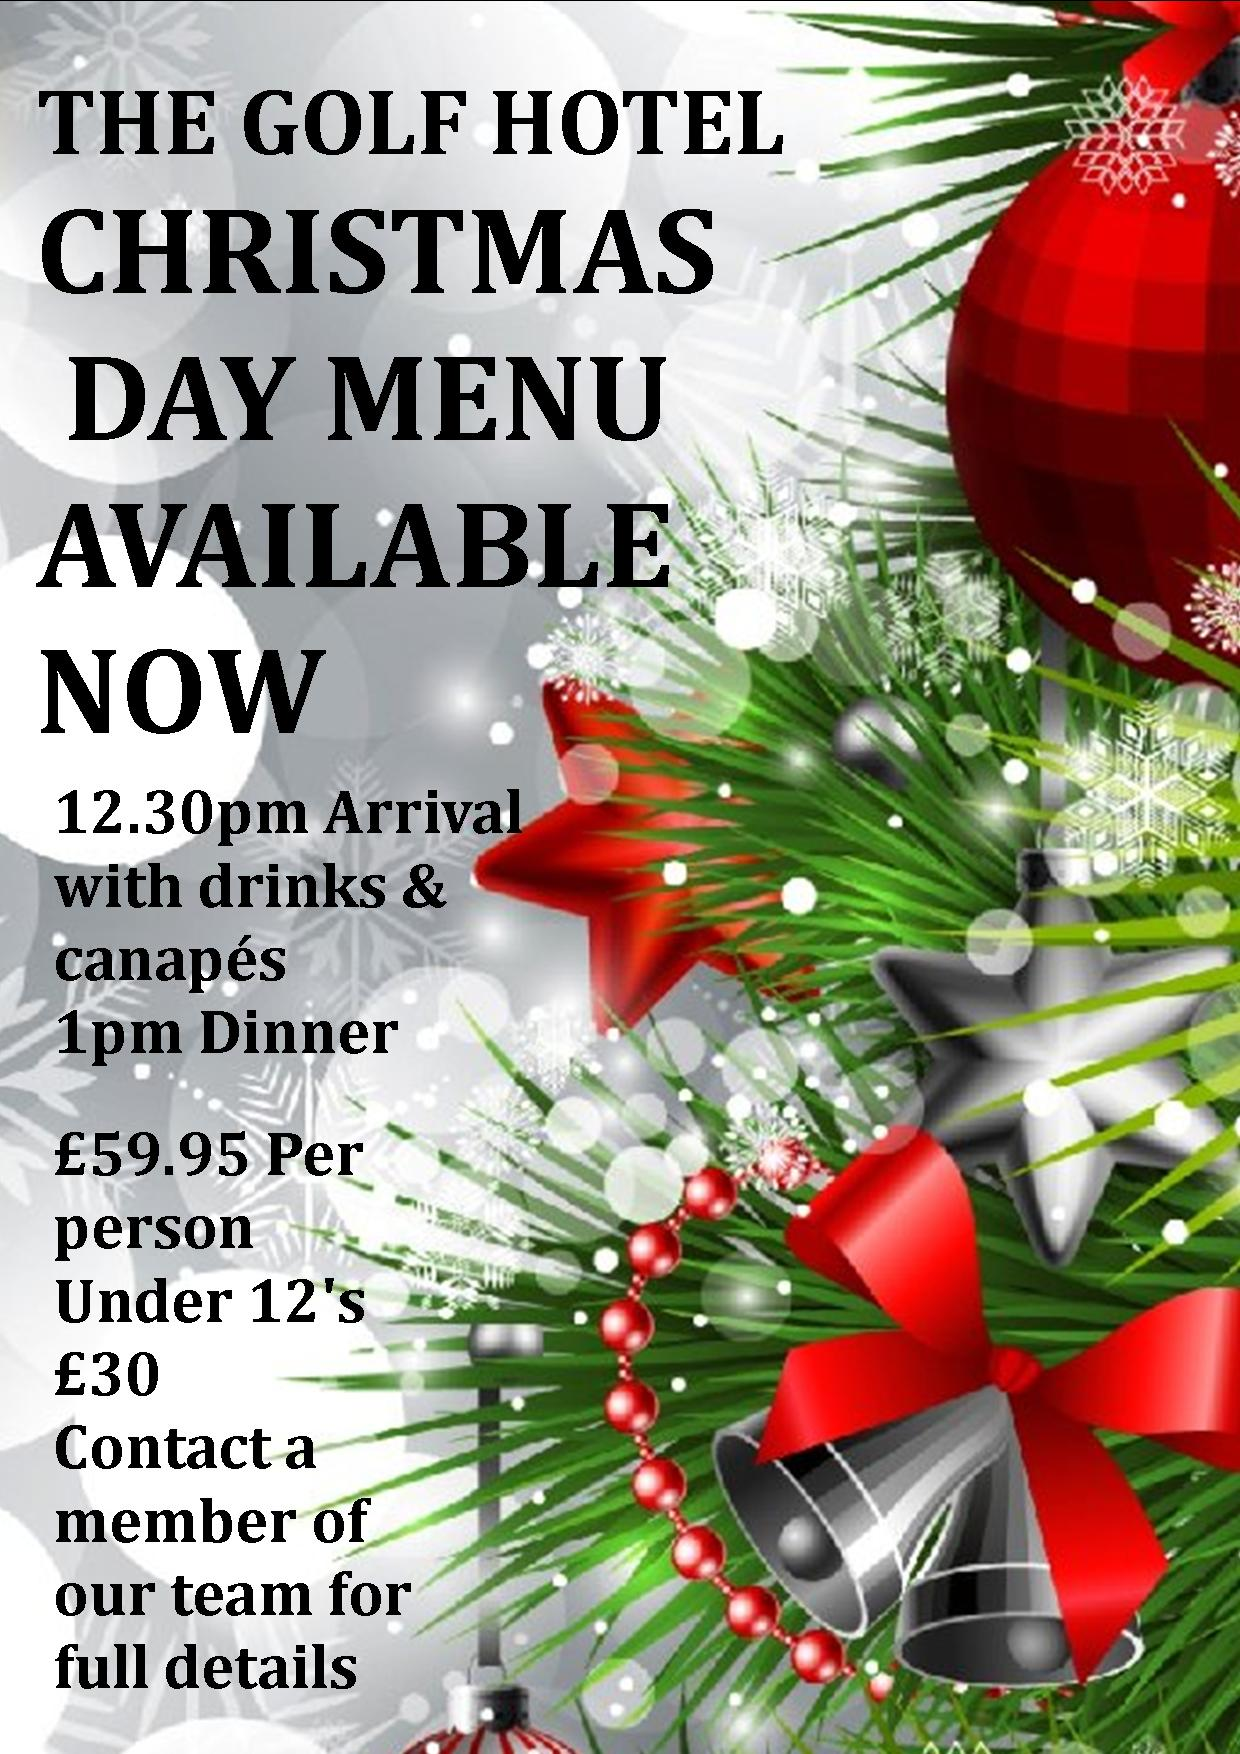 Christmas Day 2018 Poster - Golf Hotel Silloth